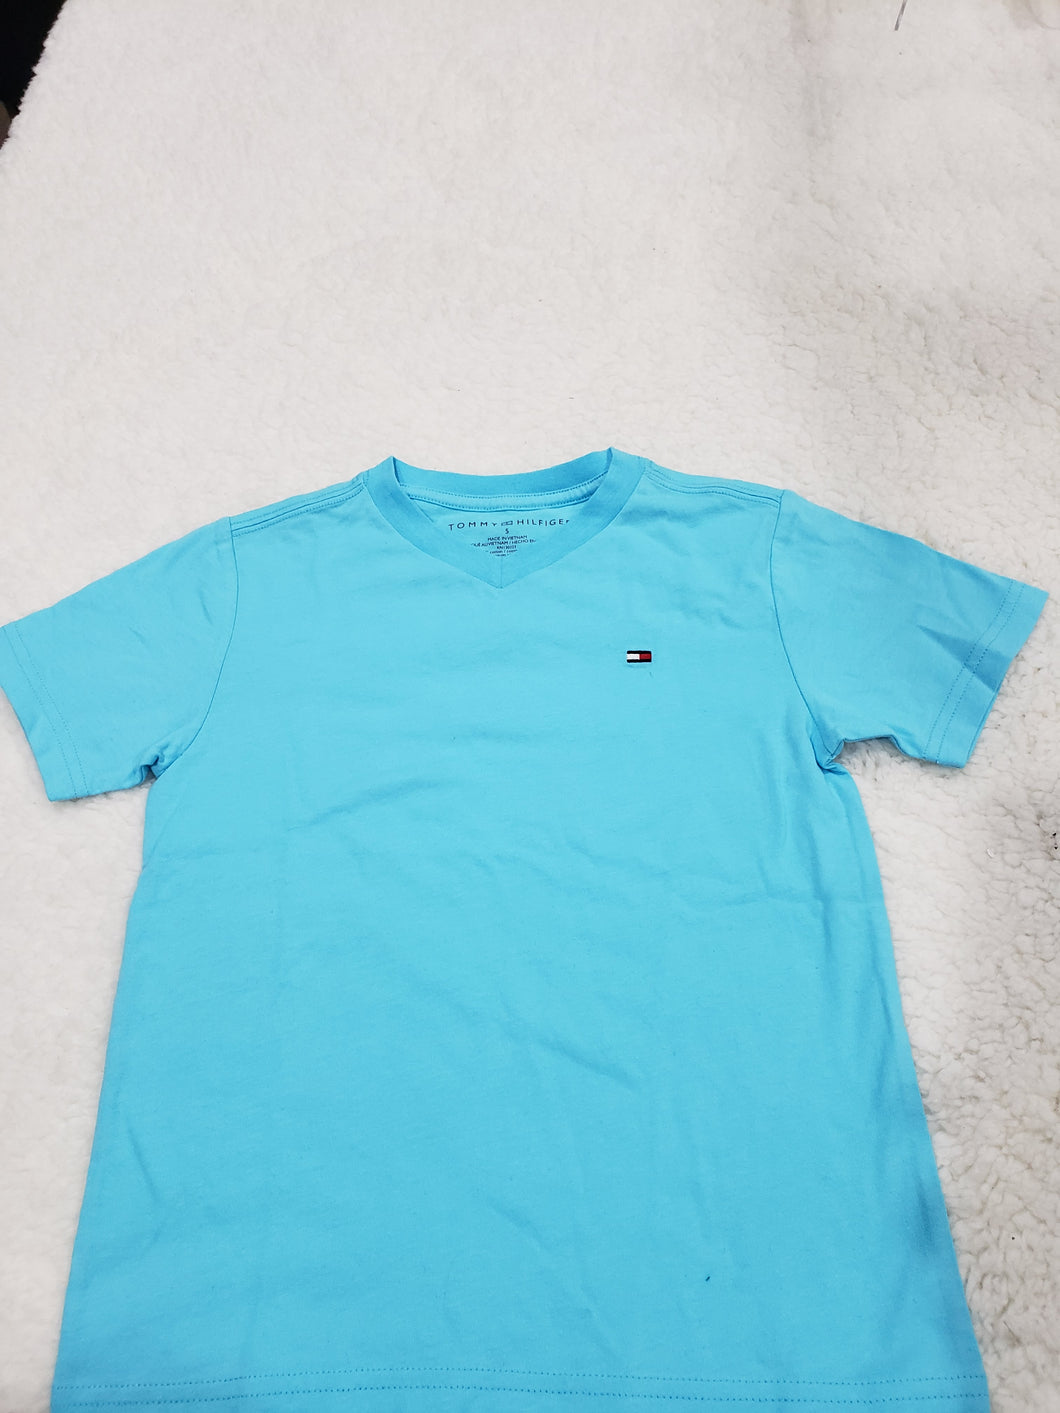 Boys TH Teal tshirt 5t